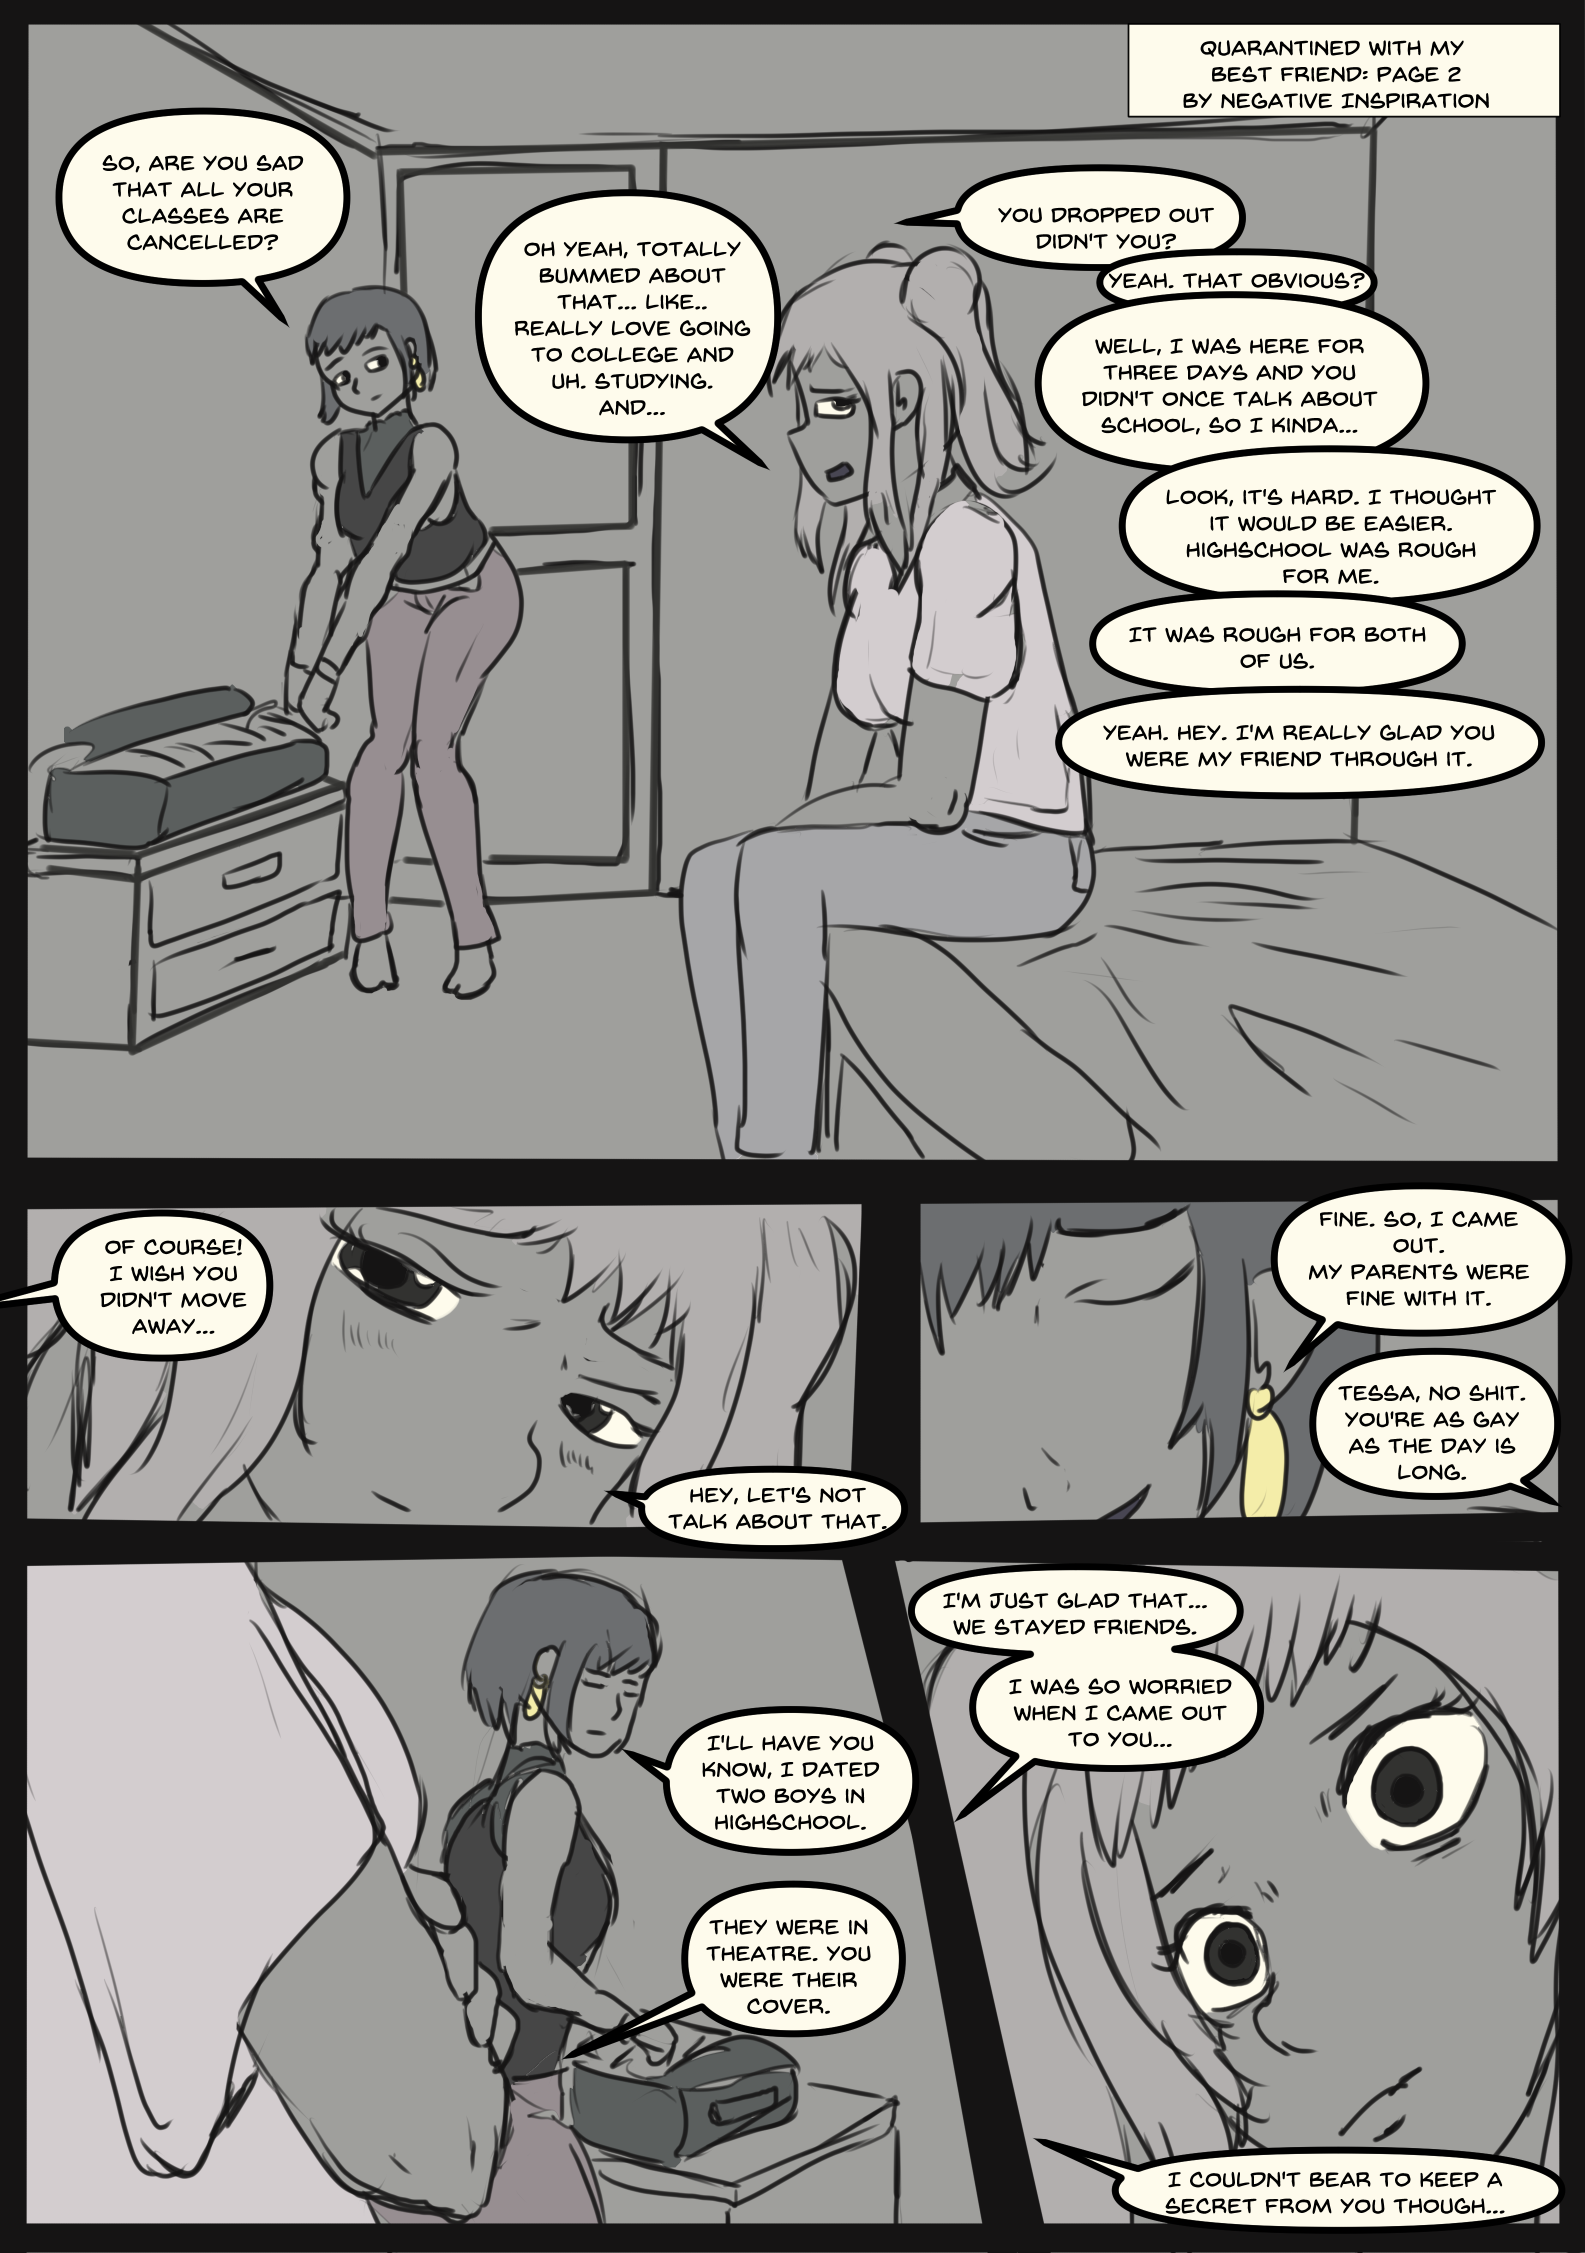 Quarantined with my Best Friend: Page 2